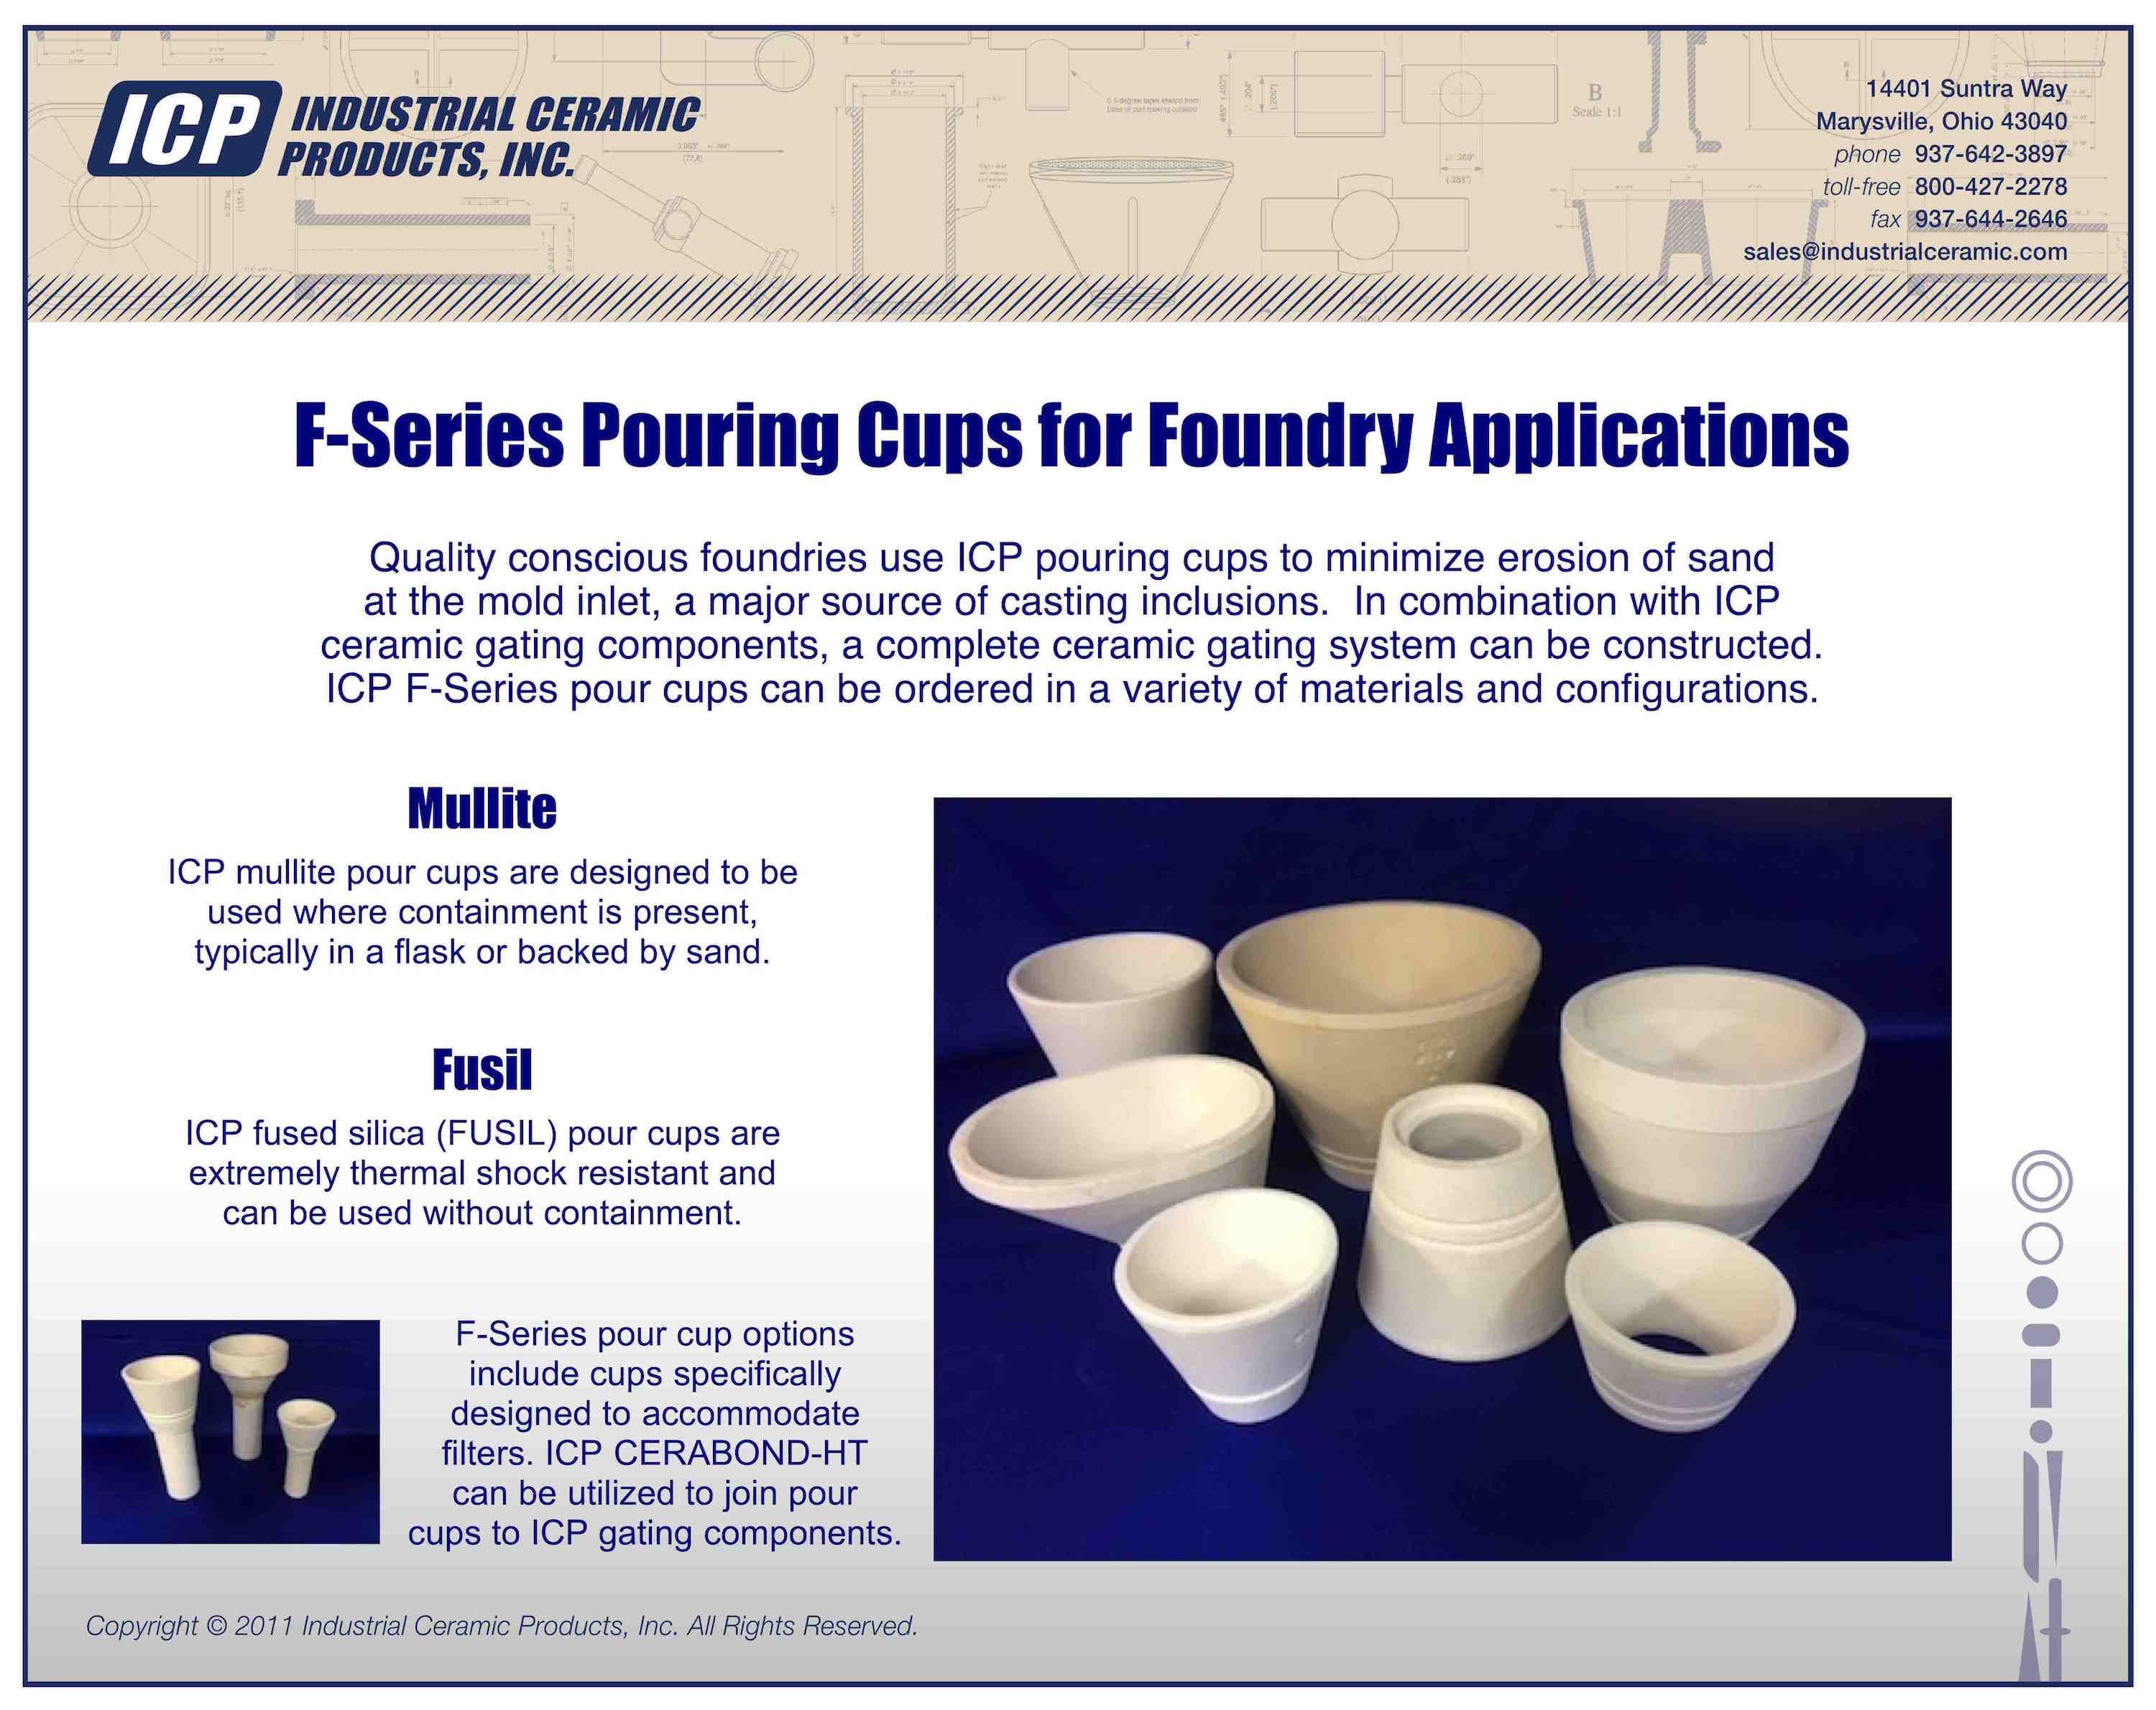 Foundry Products Industrial Ceramic Products